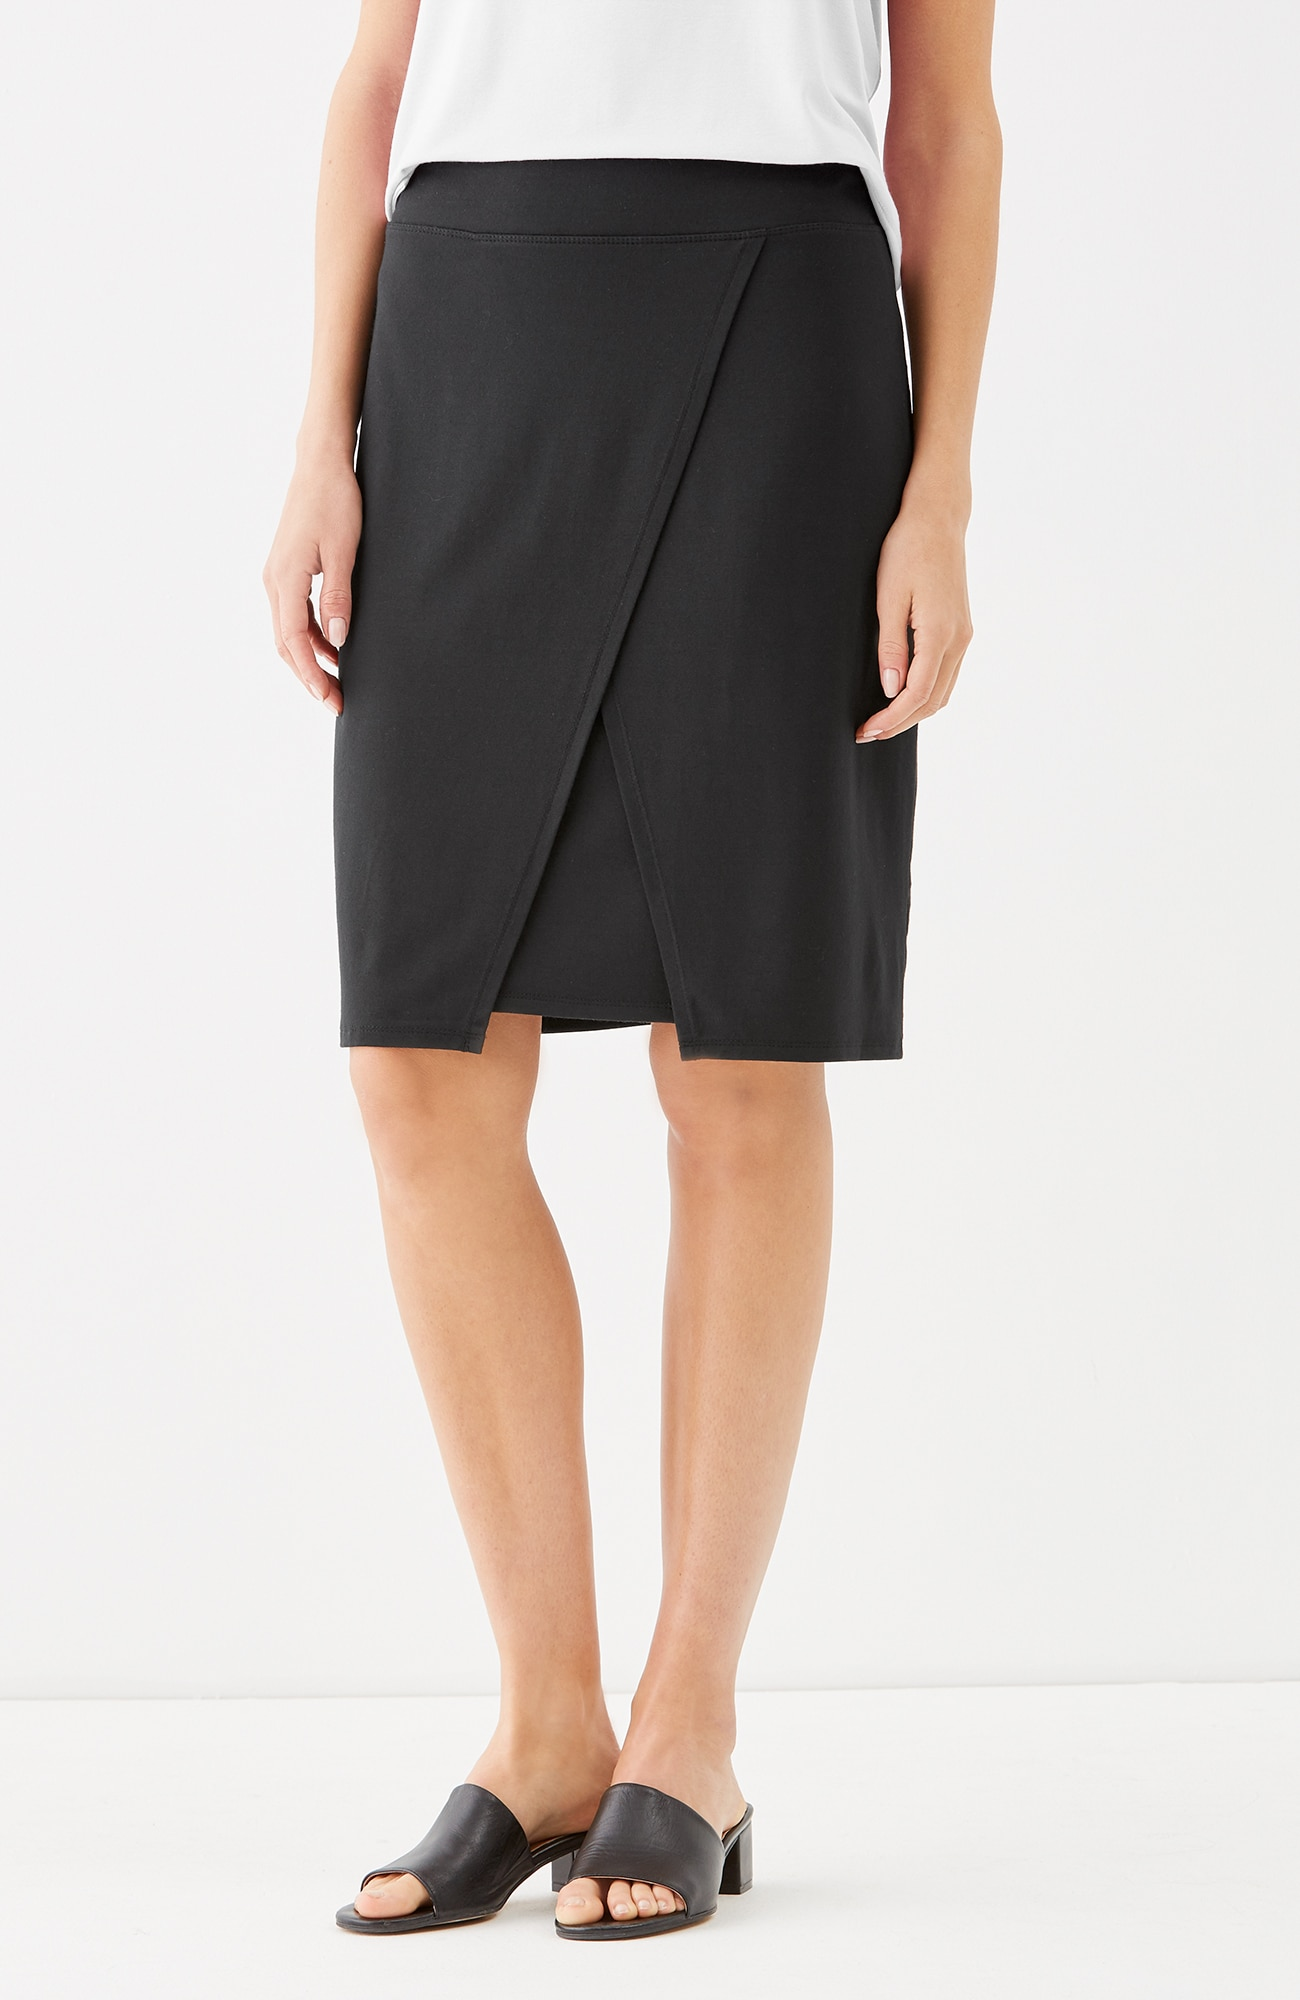 Wearever crossover skirt